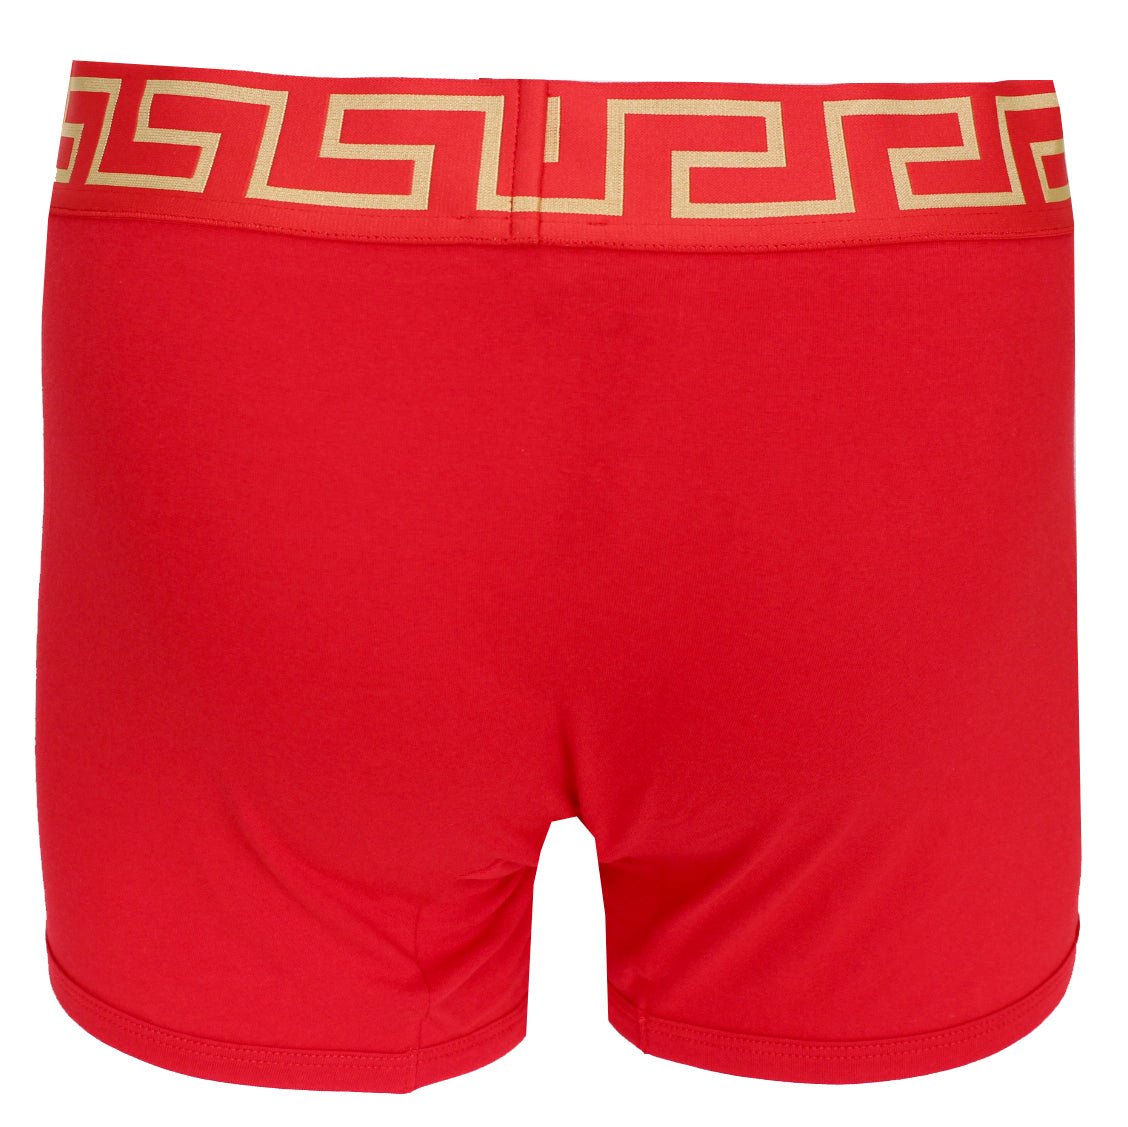 Versace Underwear Long Trunk W/Greca Border |Red and Gold